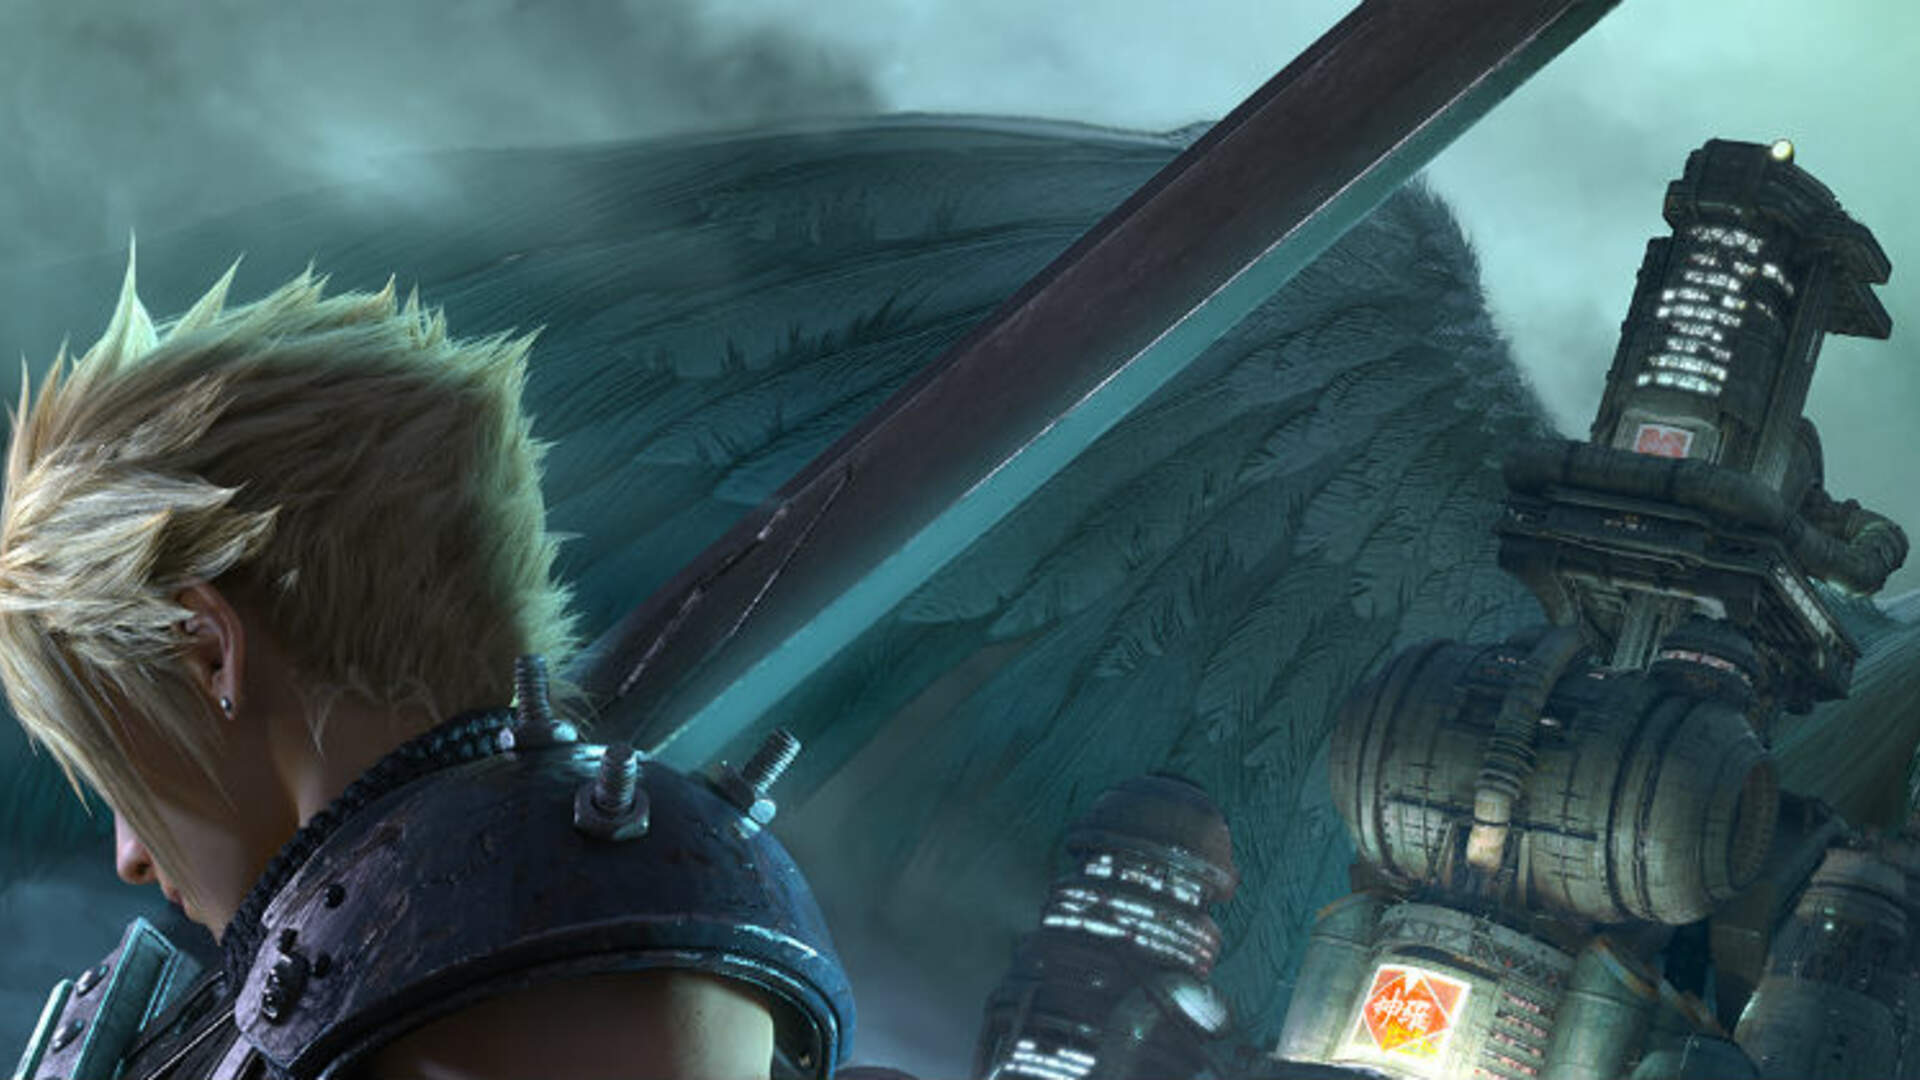 Final Fantasy 7 Remake Moves To In-House Development at Square Enix